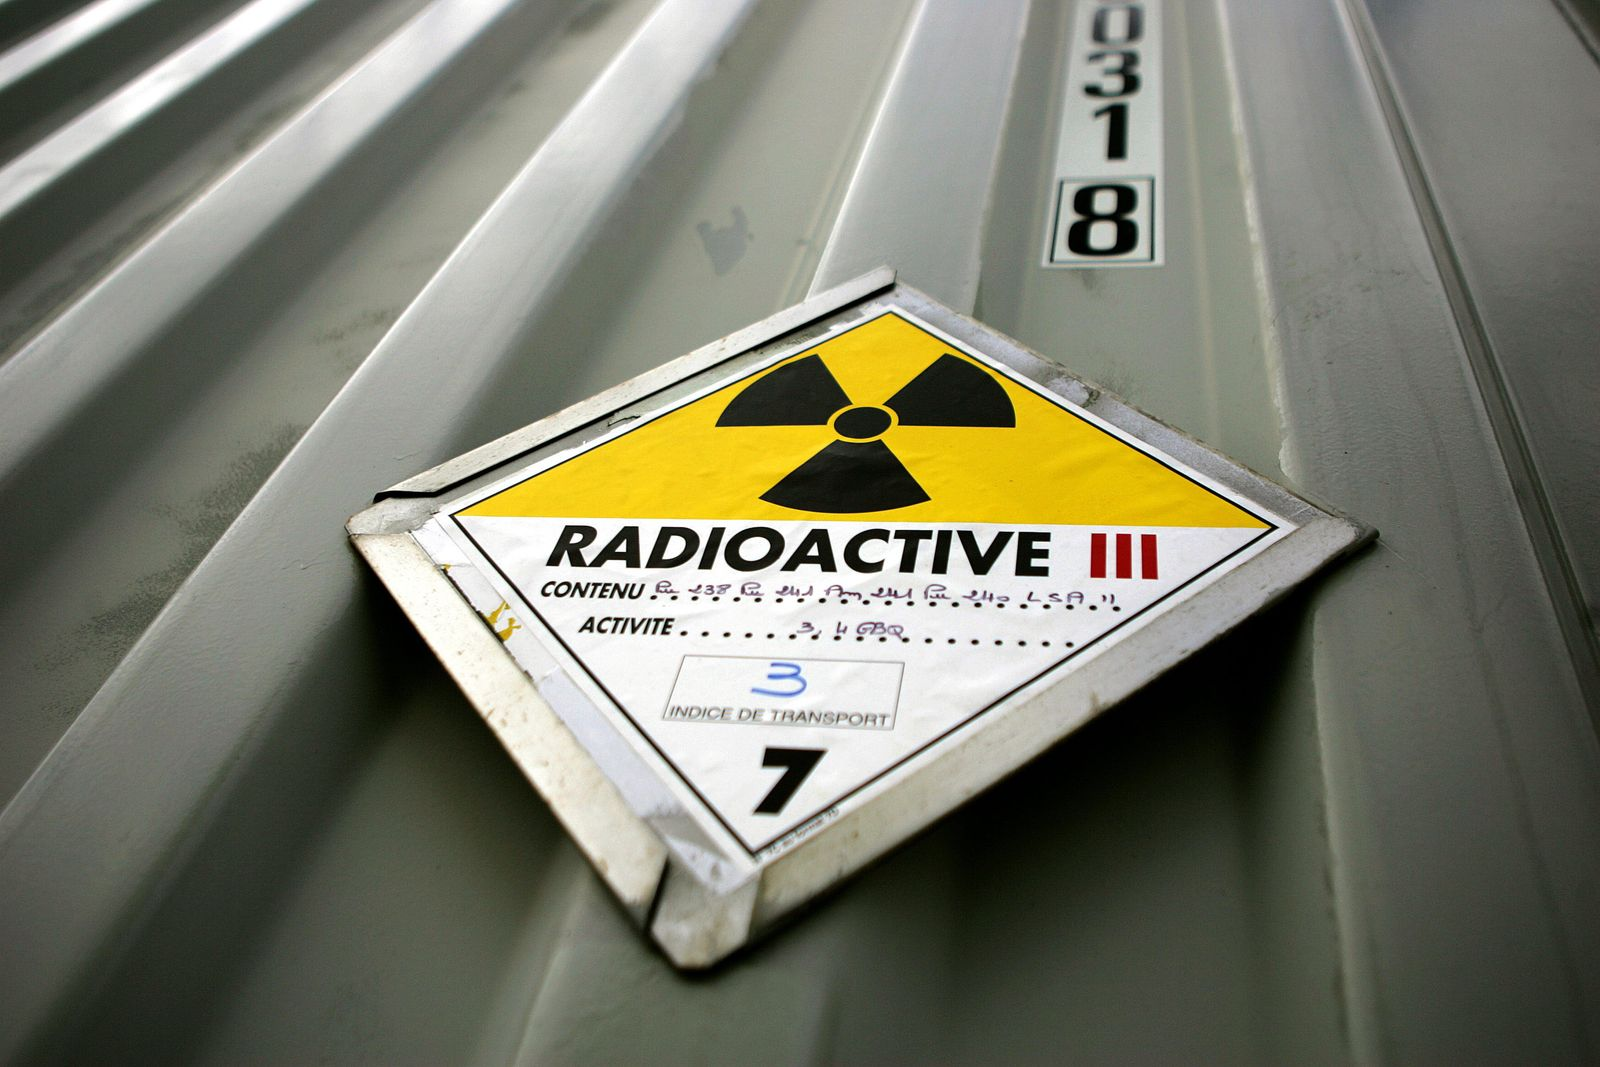 FILES-ENVIRONMENT-SCIENCE-ENERGY-NUCLEAR-WASTE